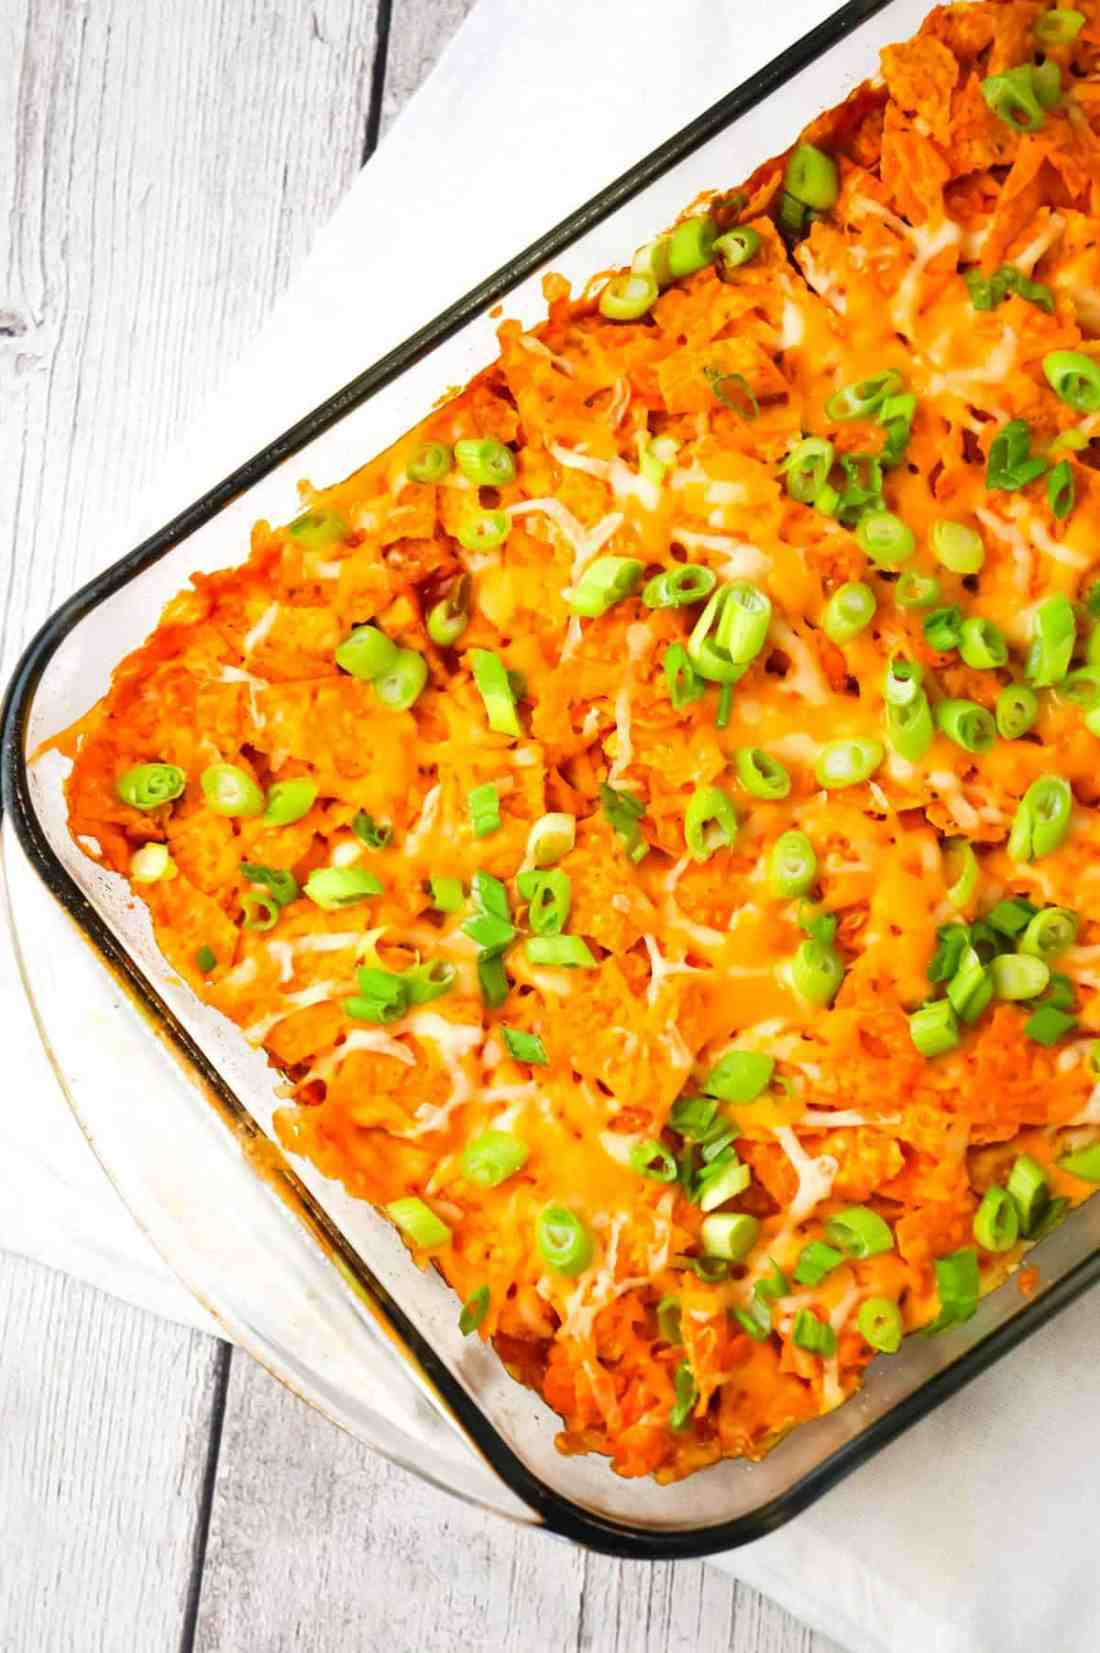 Doritos Chili Pie is an easy ground beef casserole recipe loaded with chili sauce, chunky salsa, corn, shredded cheese, crumbled Doritos and chopped green onions.